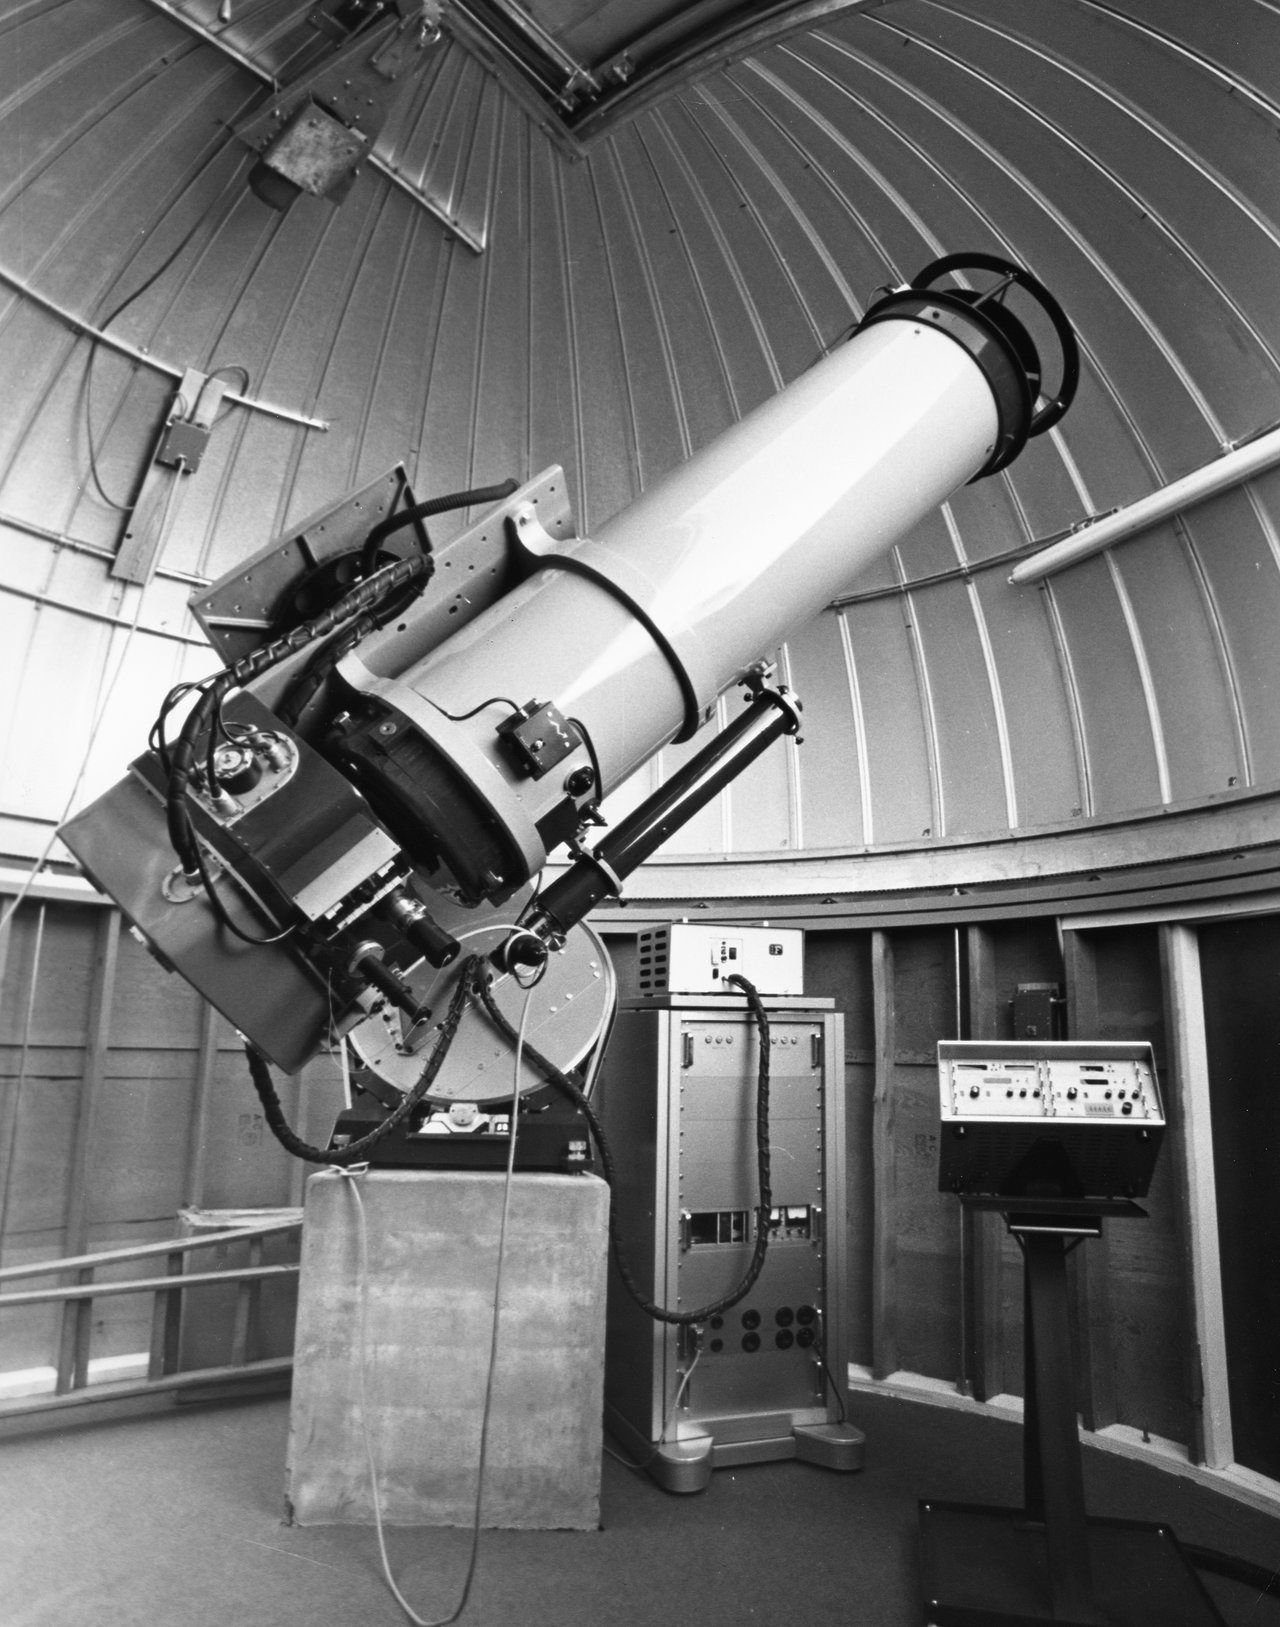 The Swiss 0.4-metre telescope in 1976